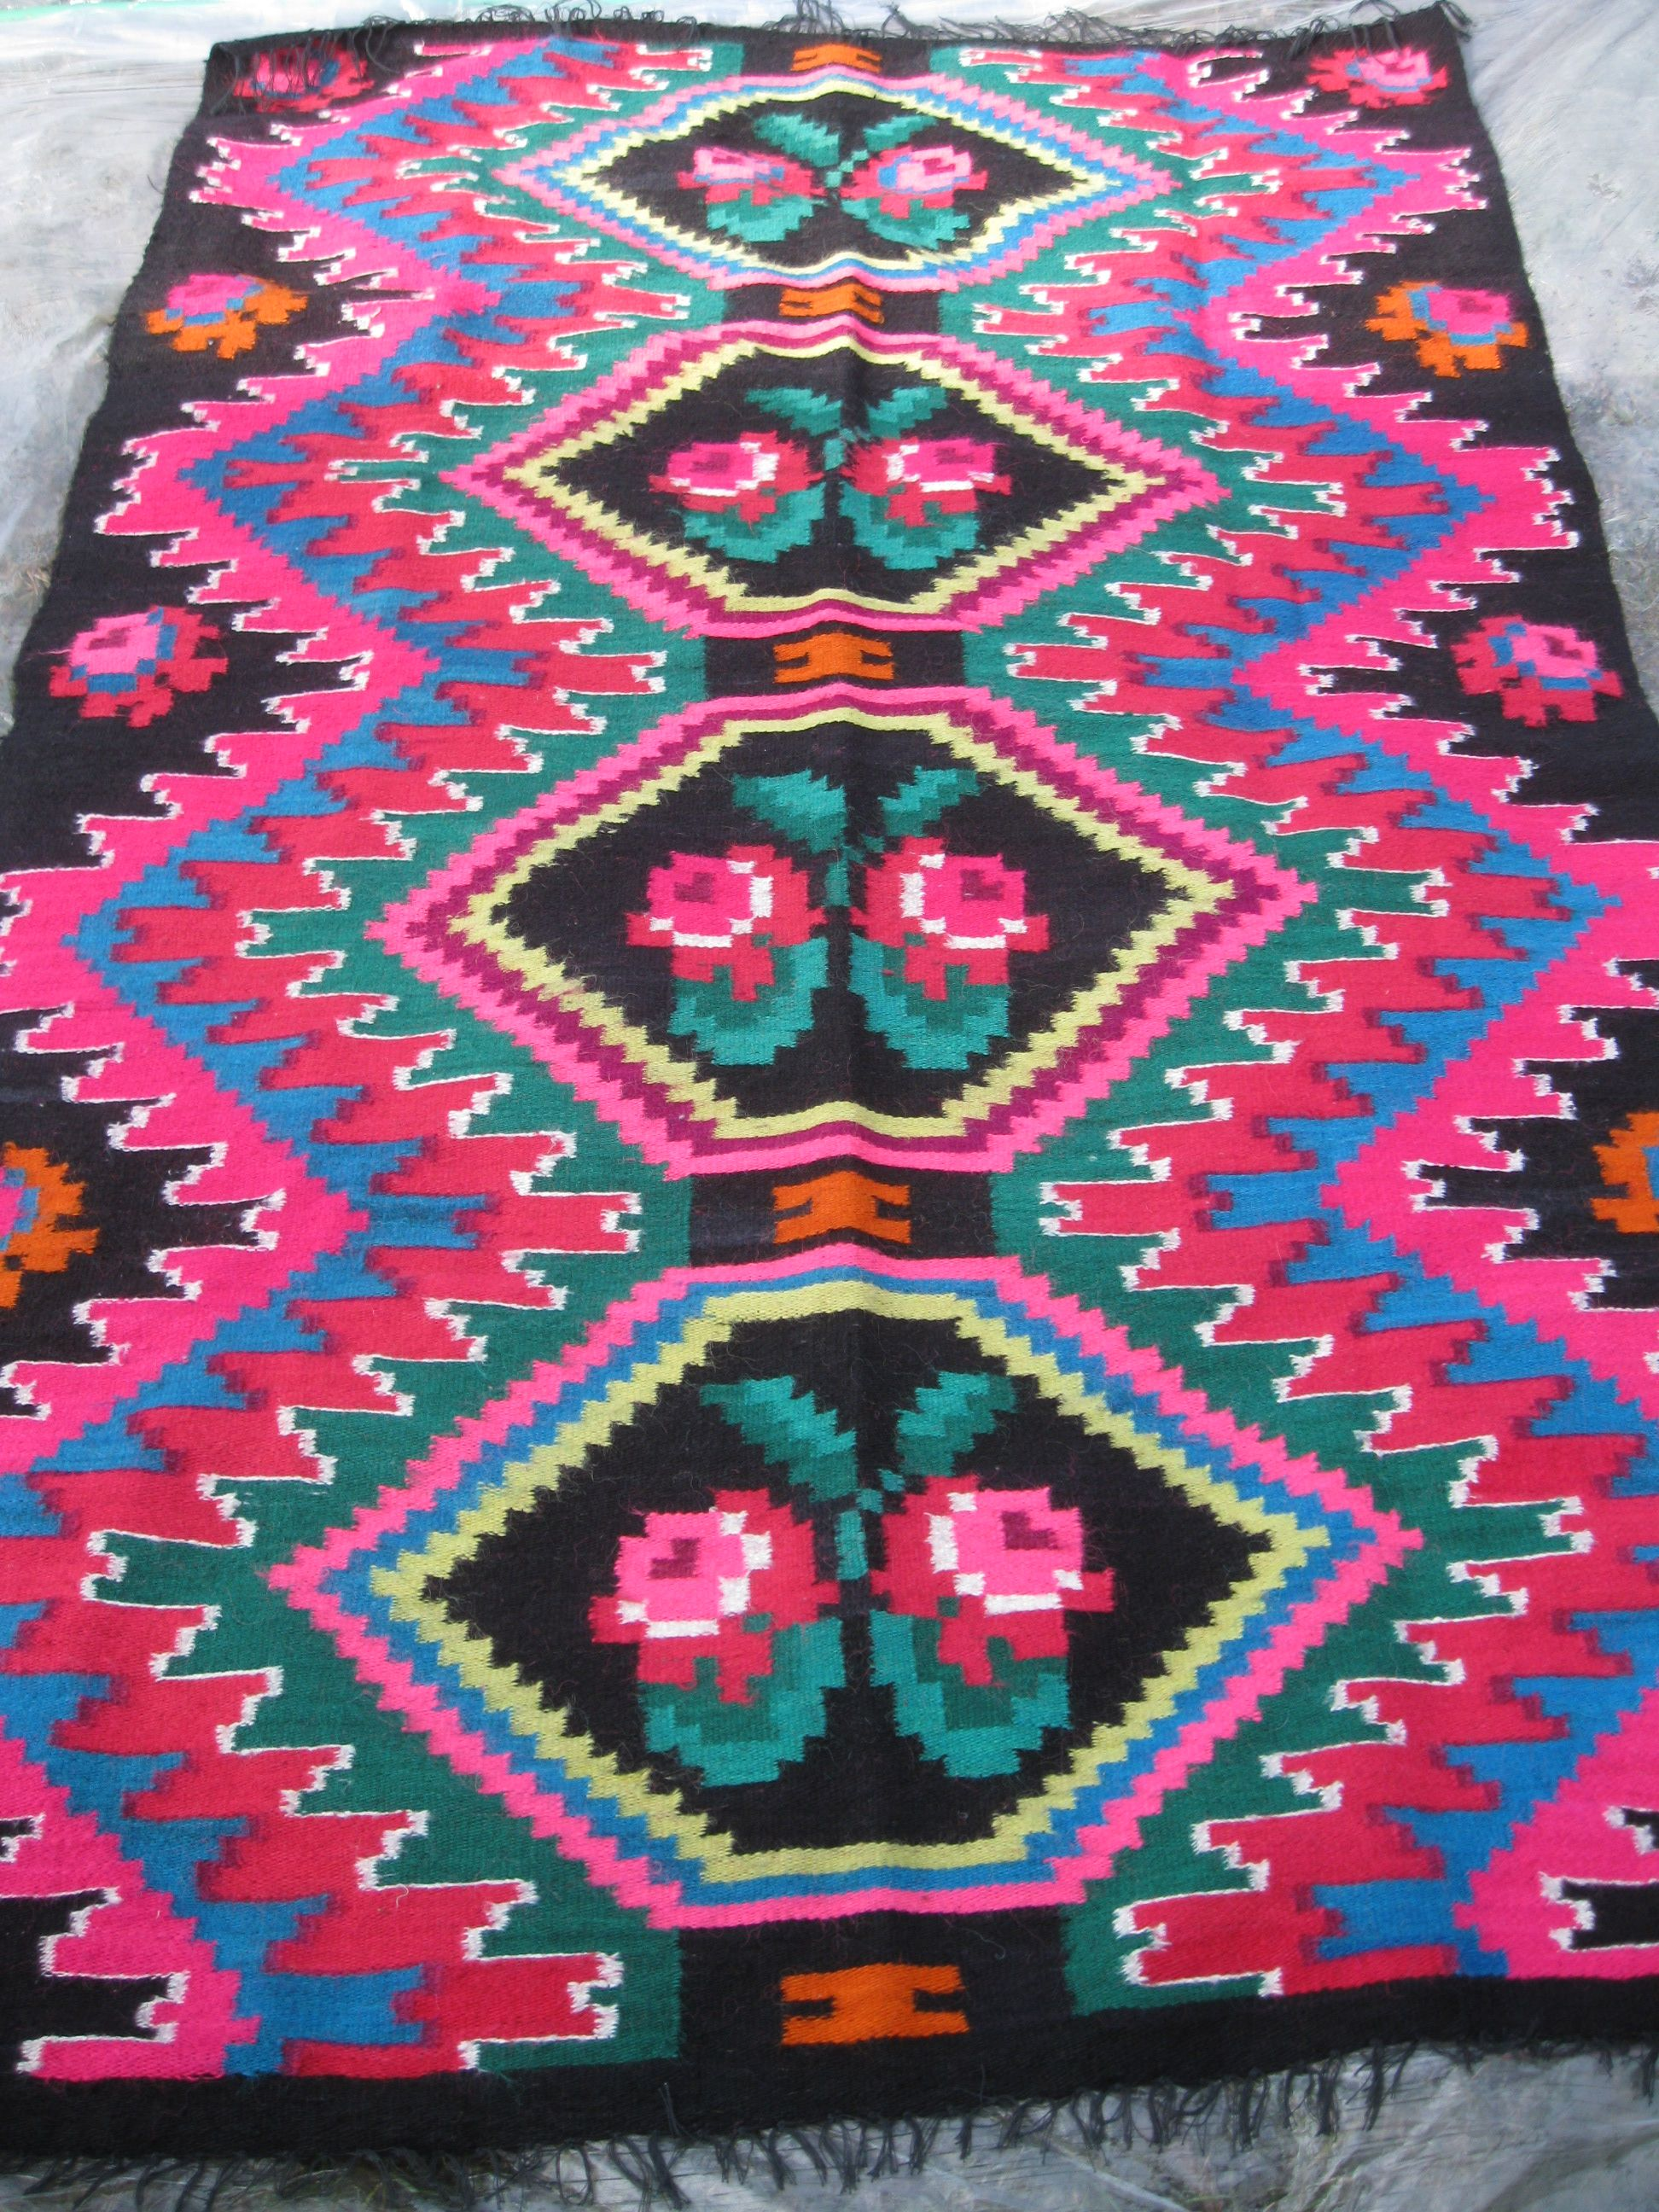 Beautiful Antique Traditional Romanian Woven Wool Carpet Rug With Flora And Geometrical L Pattern